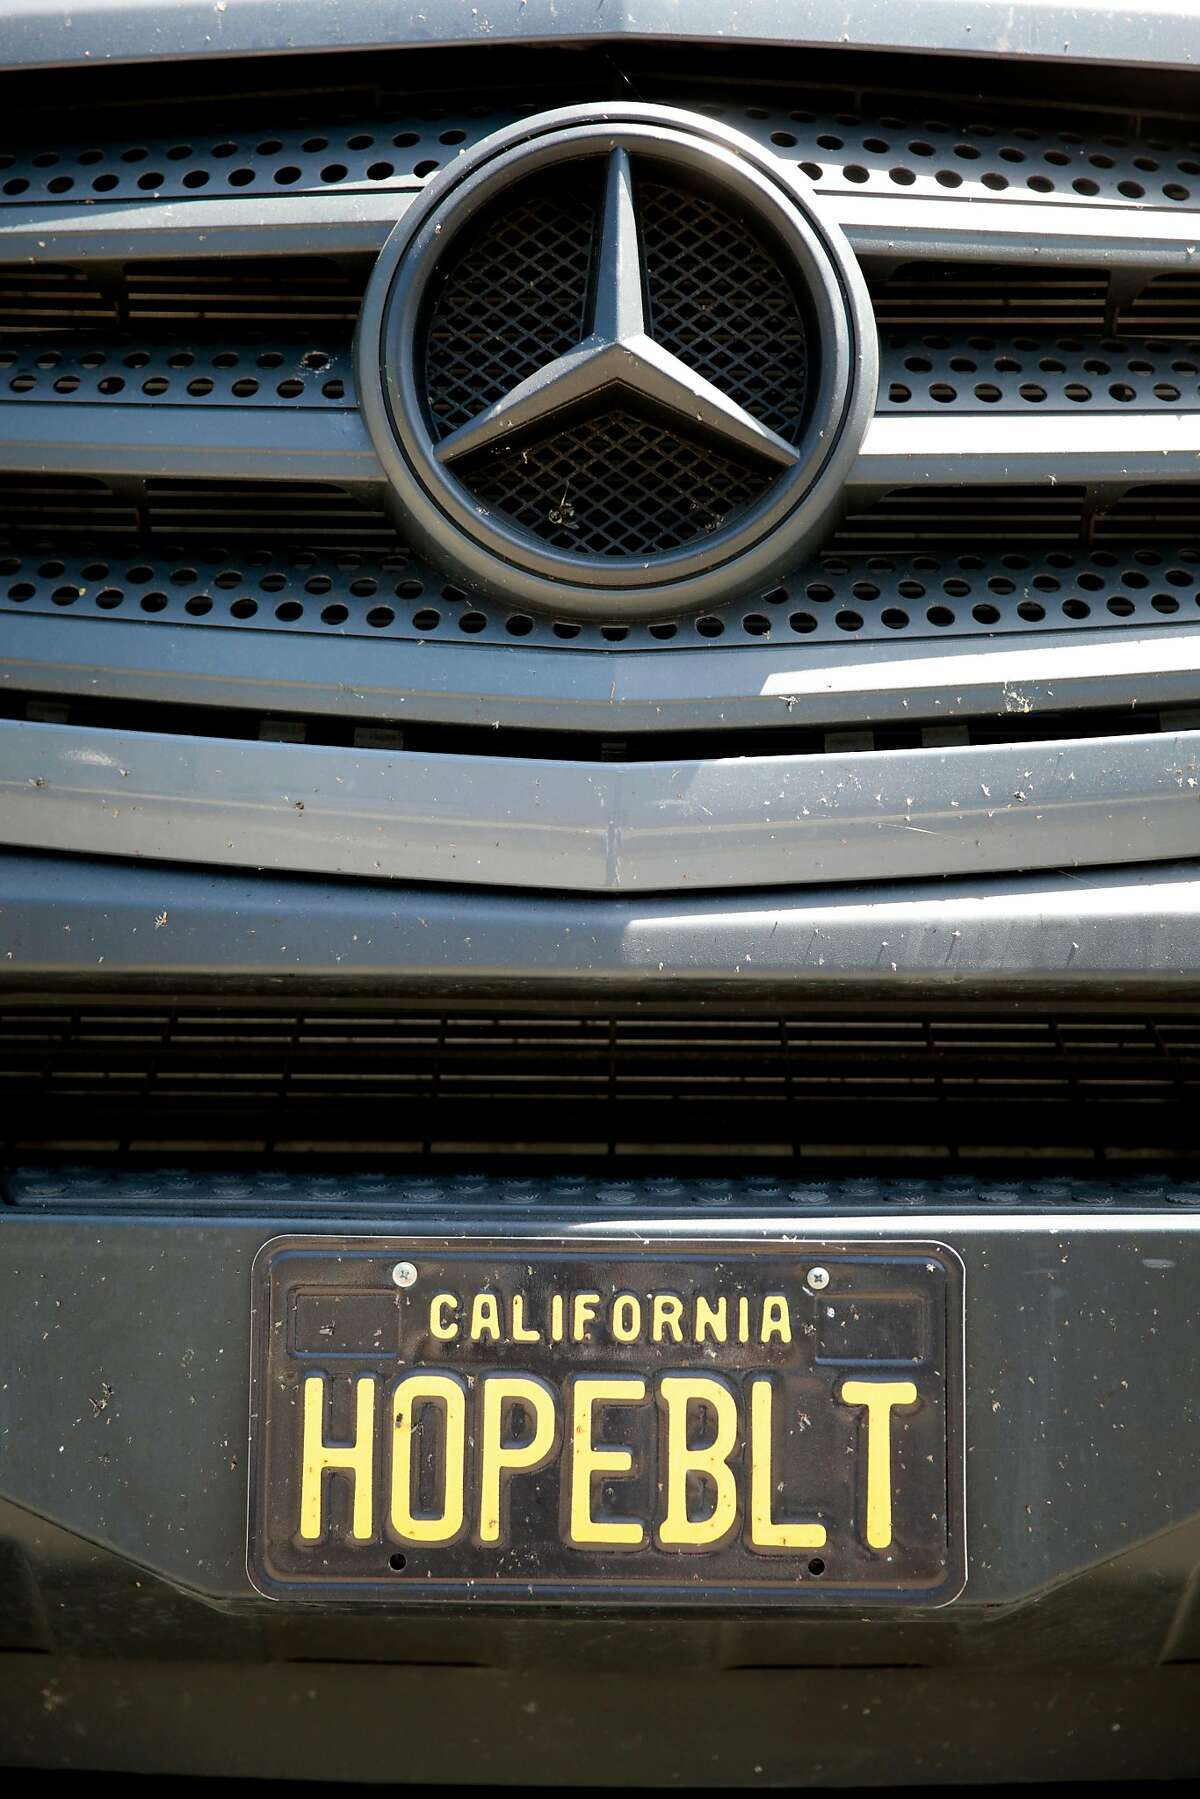 The vanity plate on one of the Hope family Mercedes-Benz Sprinter cargo vans in Petaluma.